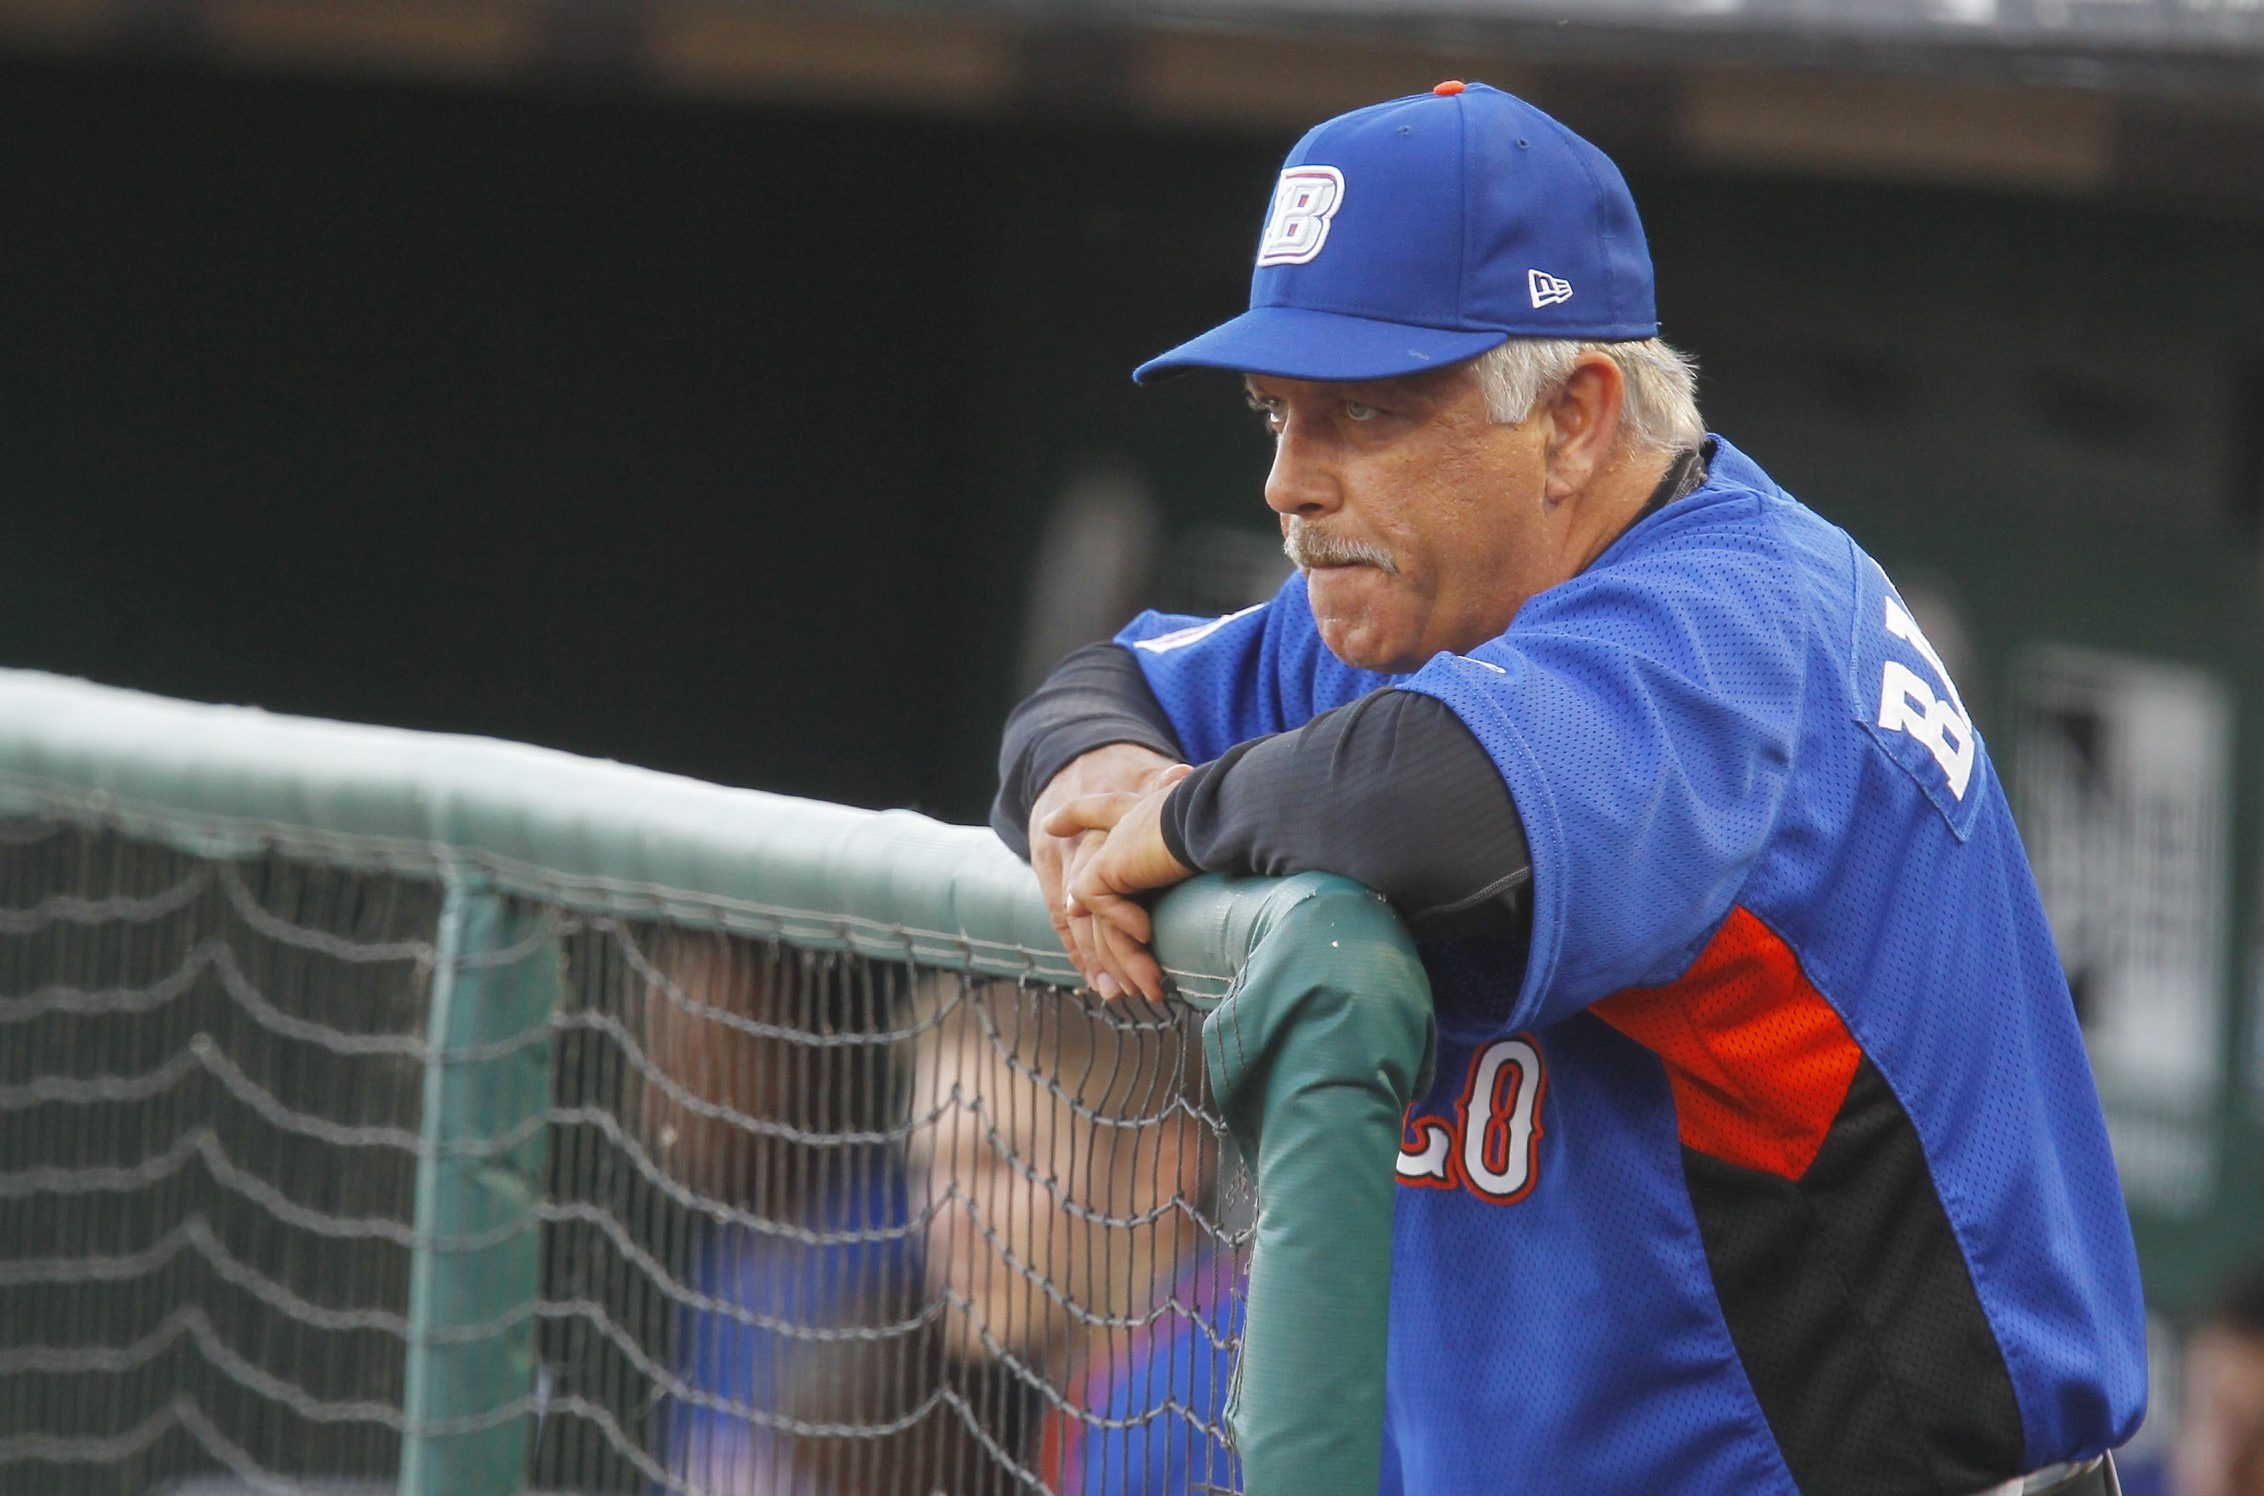 Manager Wally Backman regretted losing two key Bisons in a disappointing 2012 season.